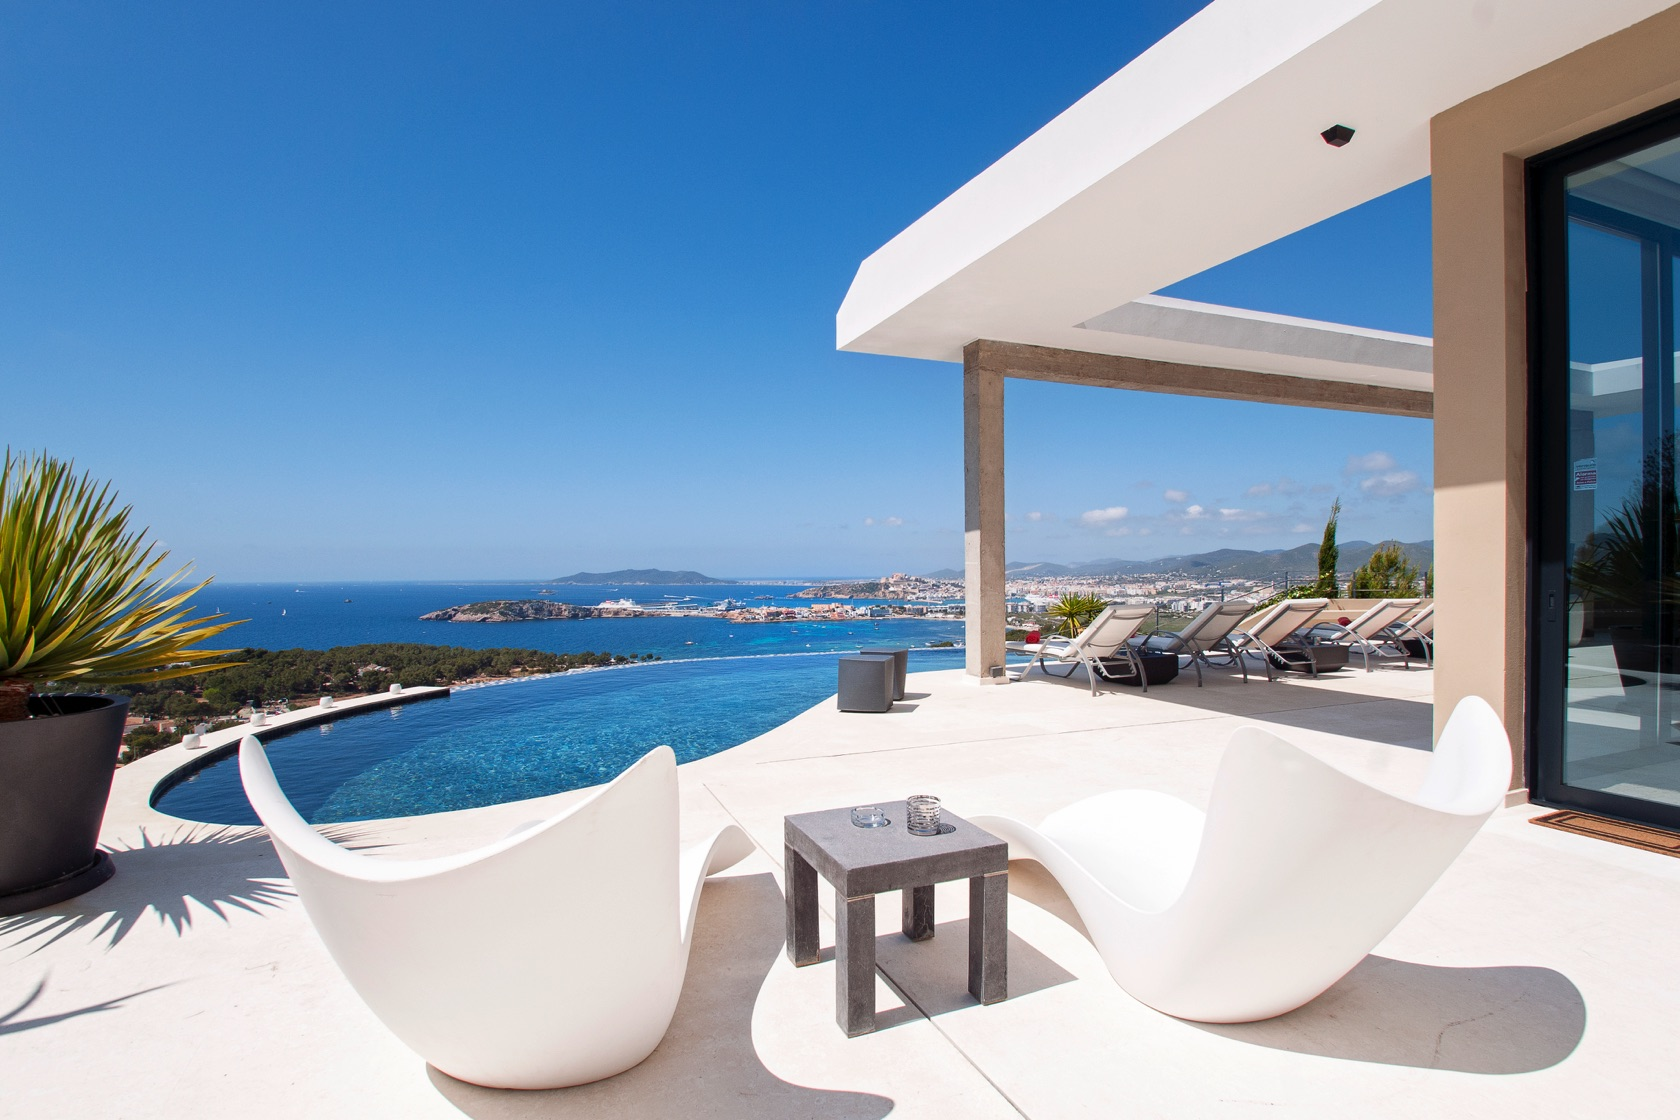 luxury villa rental, Spain, ESPIBI 2364